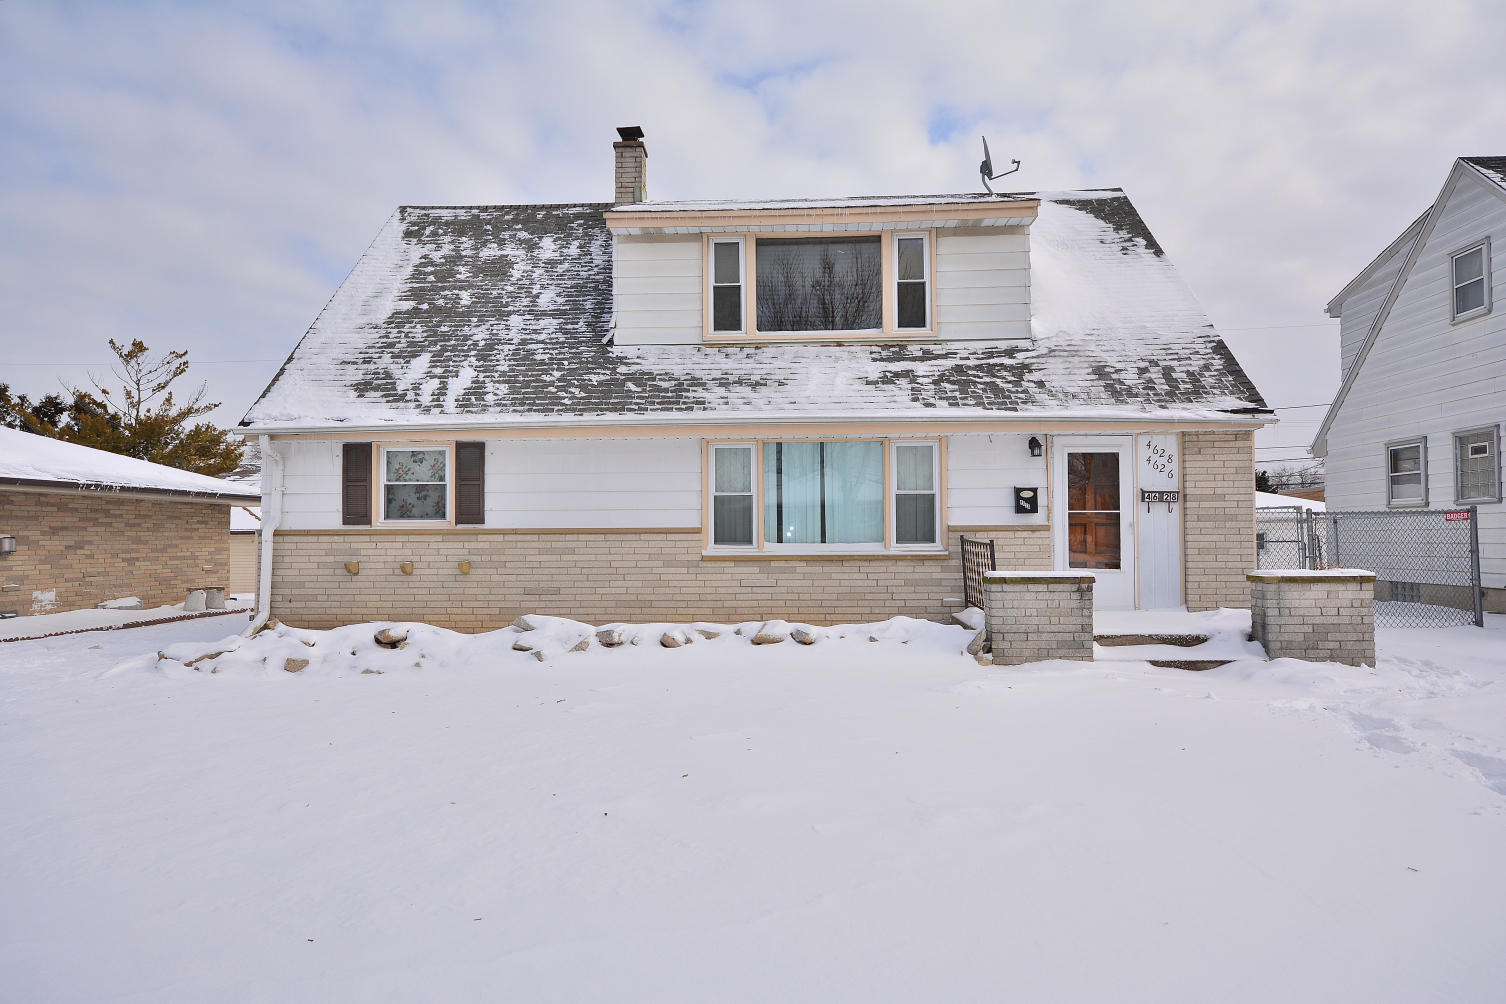 4626 14 St, Milwaukee, Wisconsin 53221, 3 Bedrooms Bedrooms, 5 Rooms Rooms,1 BathroomBathrooms,Two-Family,For Sale,14 St,1,1676944